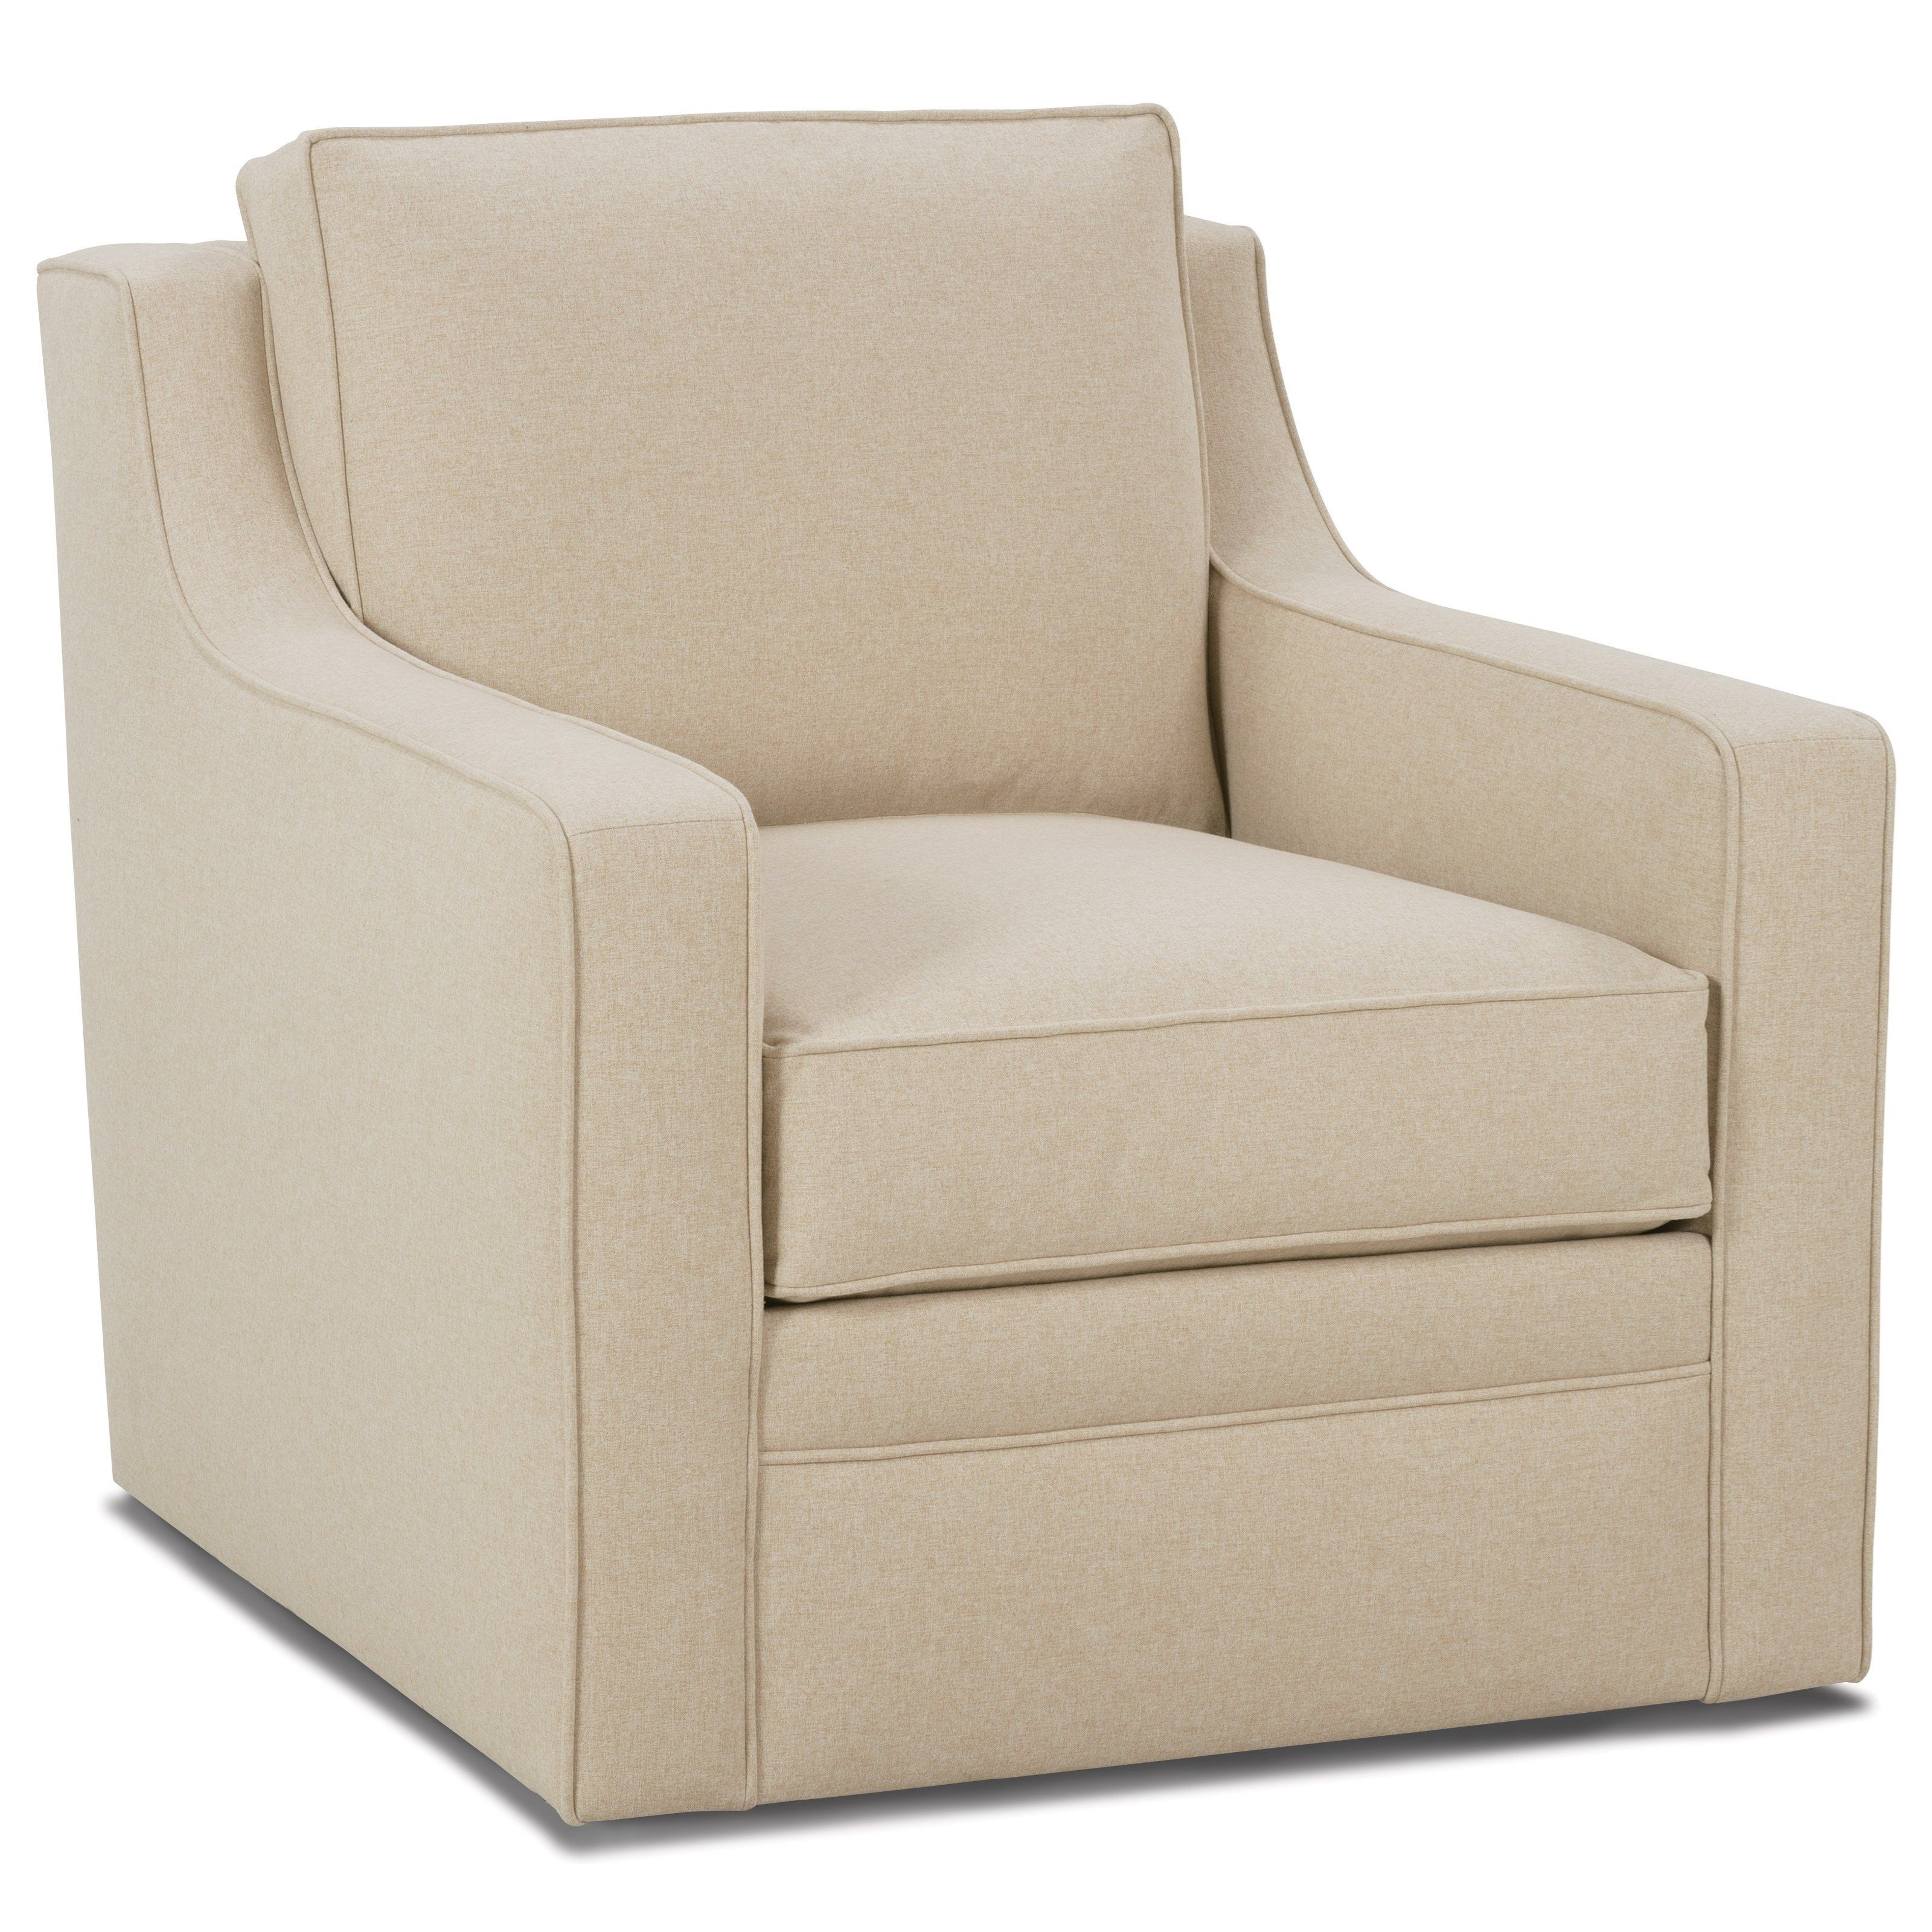 Fuller Transitional Swivel Chair By Rowe Furniture